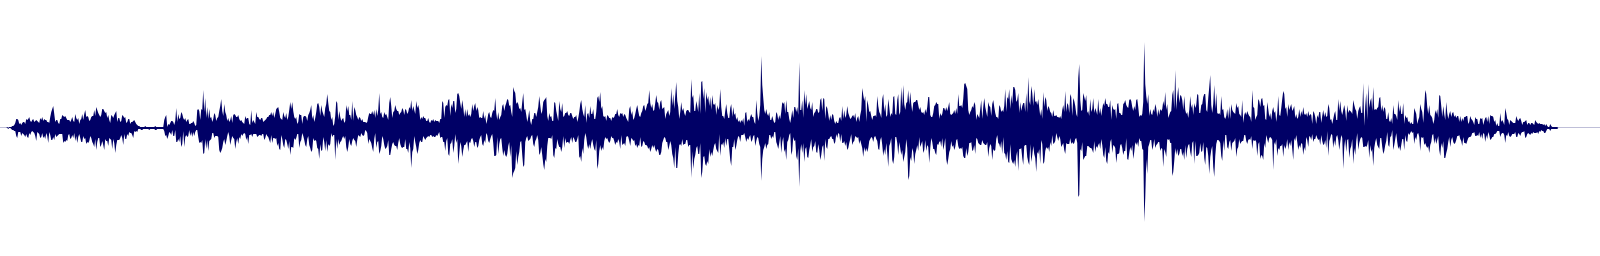 waveform of track #131678